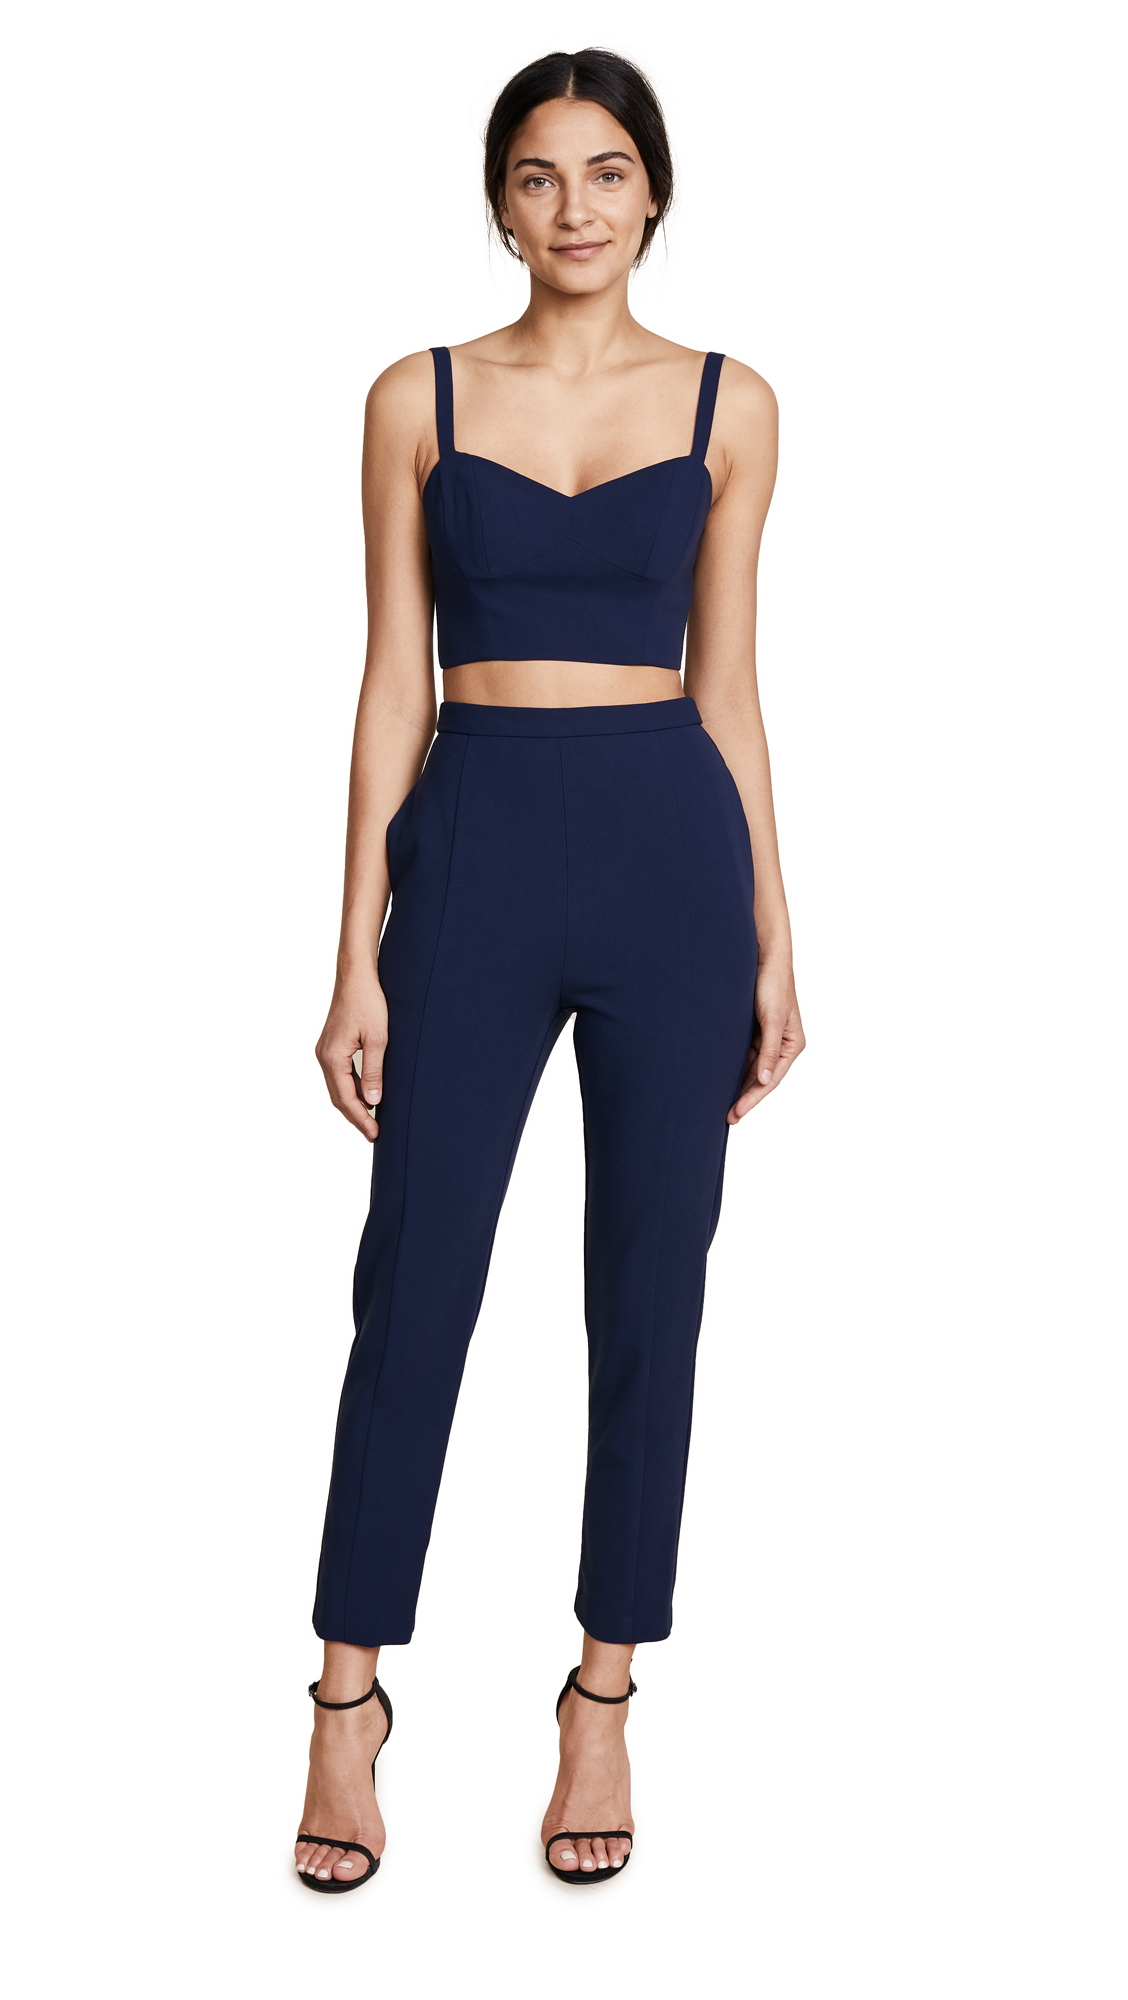 Black Halo Mayka Two Piece Jumpsuit - Pacific Blue